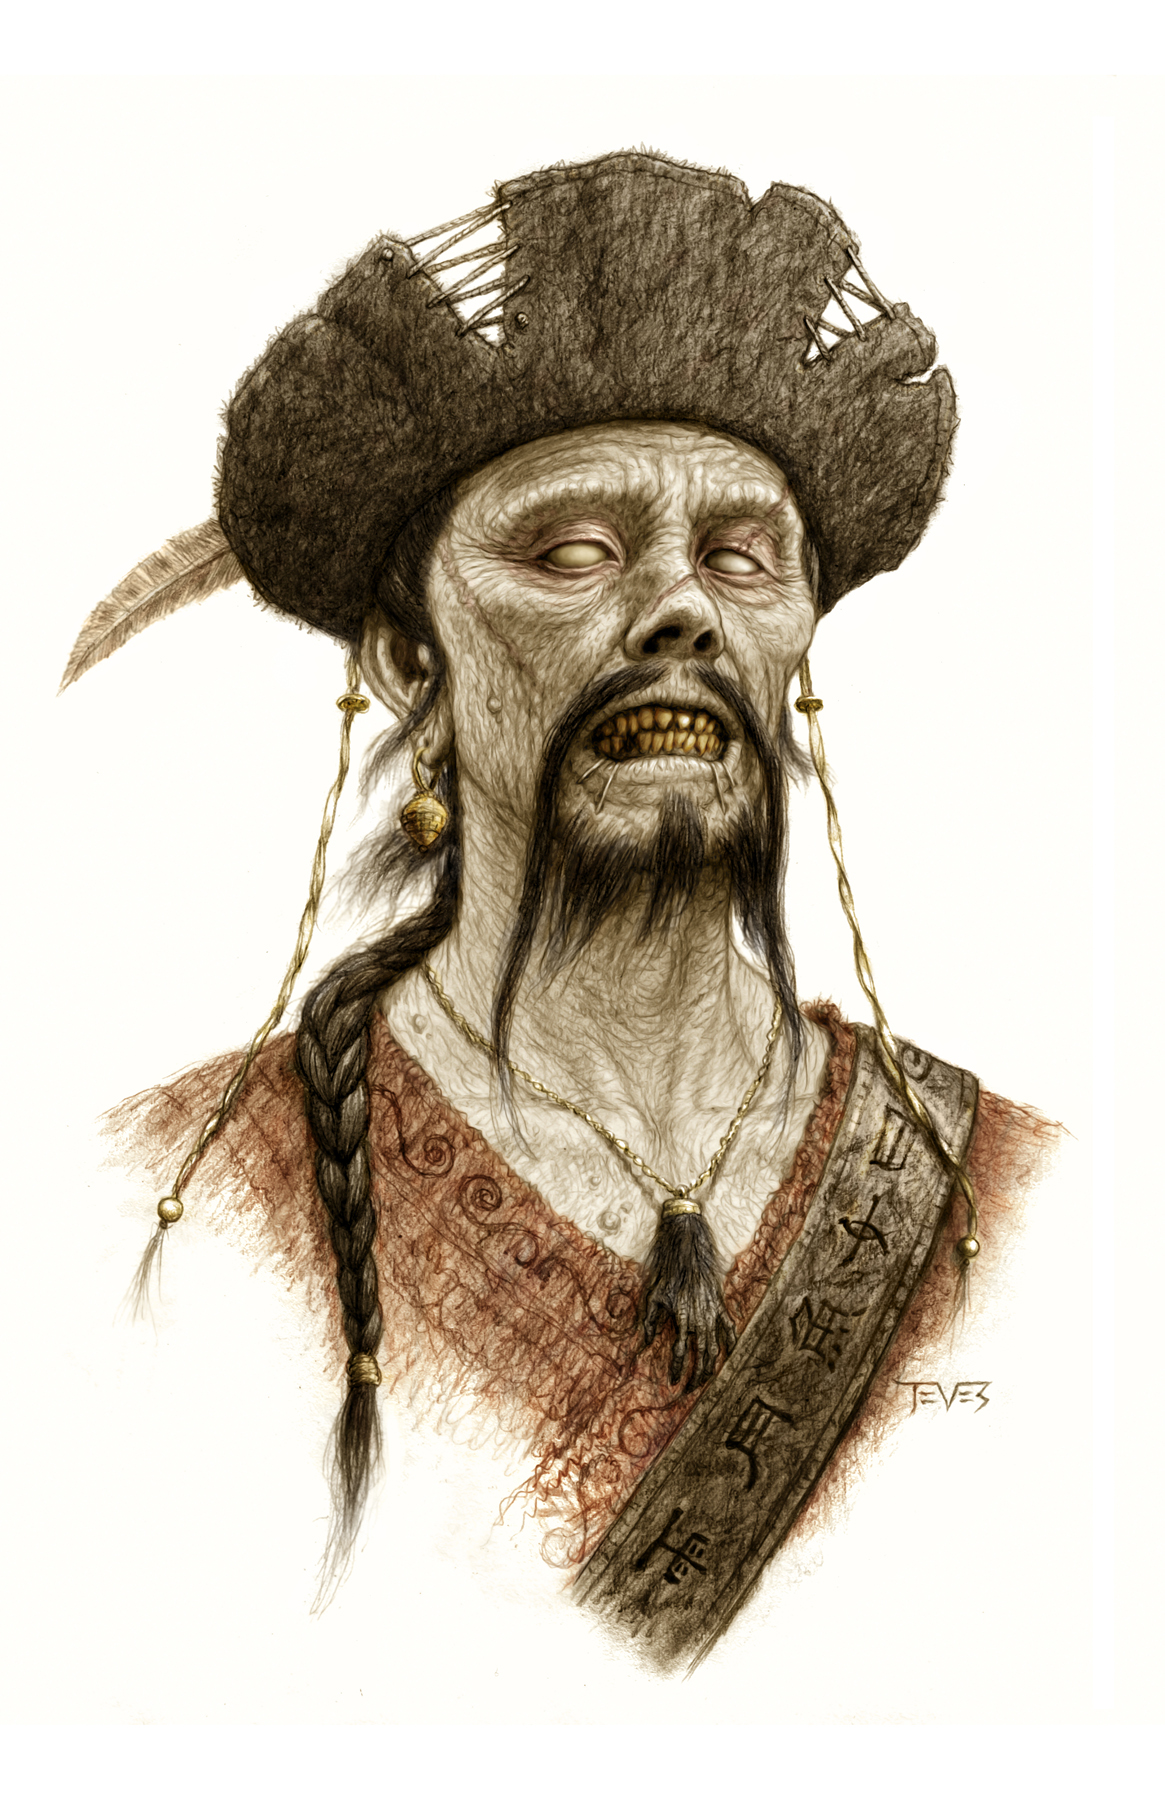 http://collider.com/wp-content/uploads/pirates-of-the-caribbean-on-stranger-tides-concept-art-zombie-05.jpg